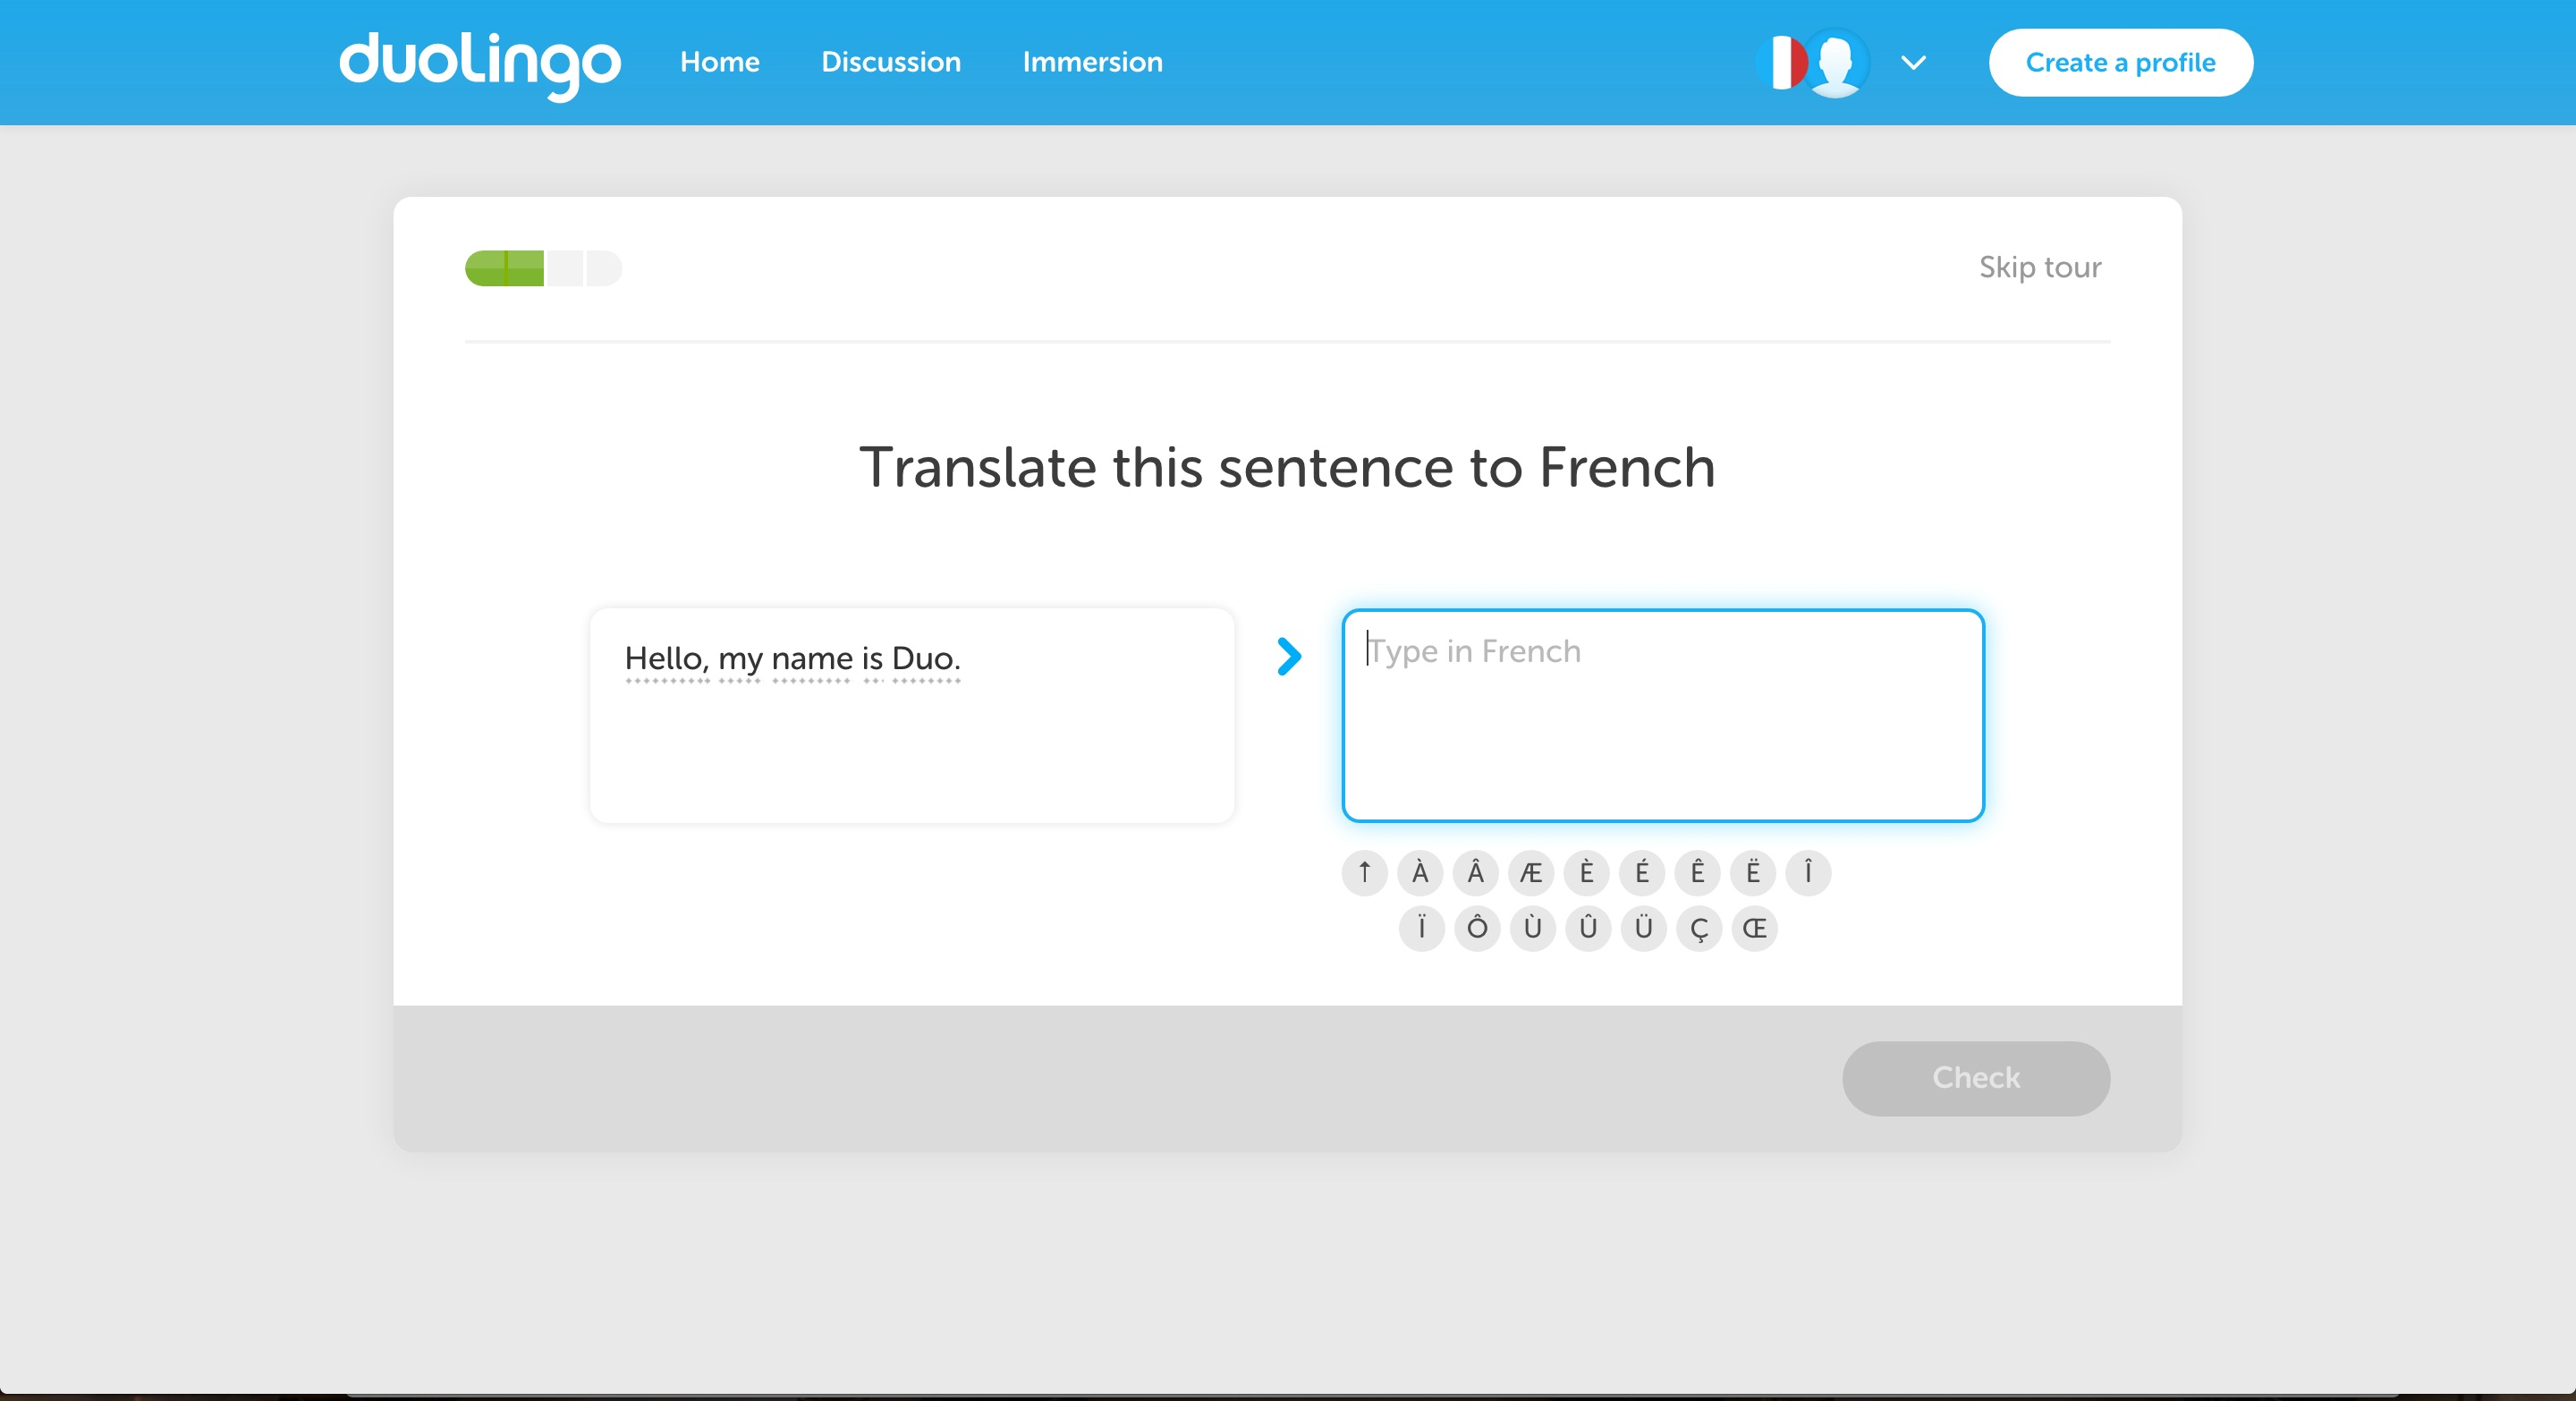 duolingo user onboarding step 6